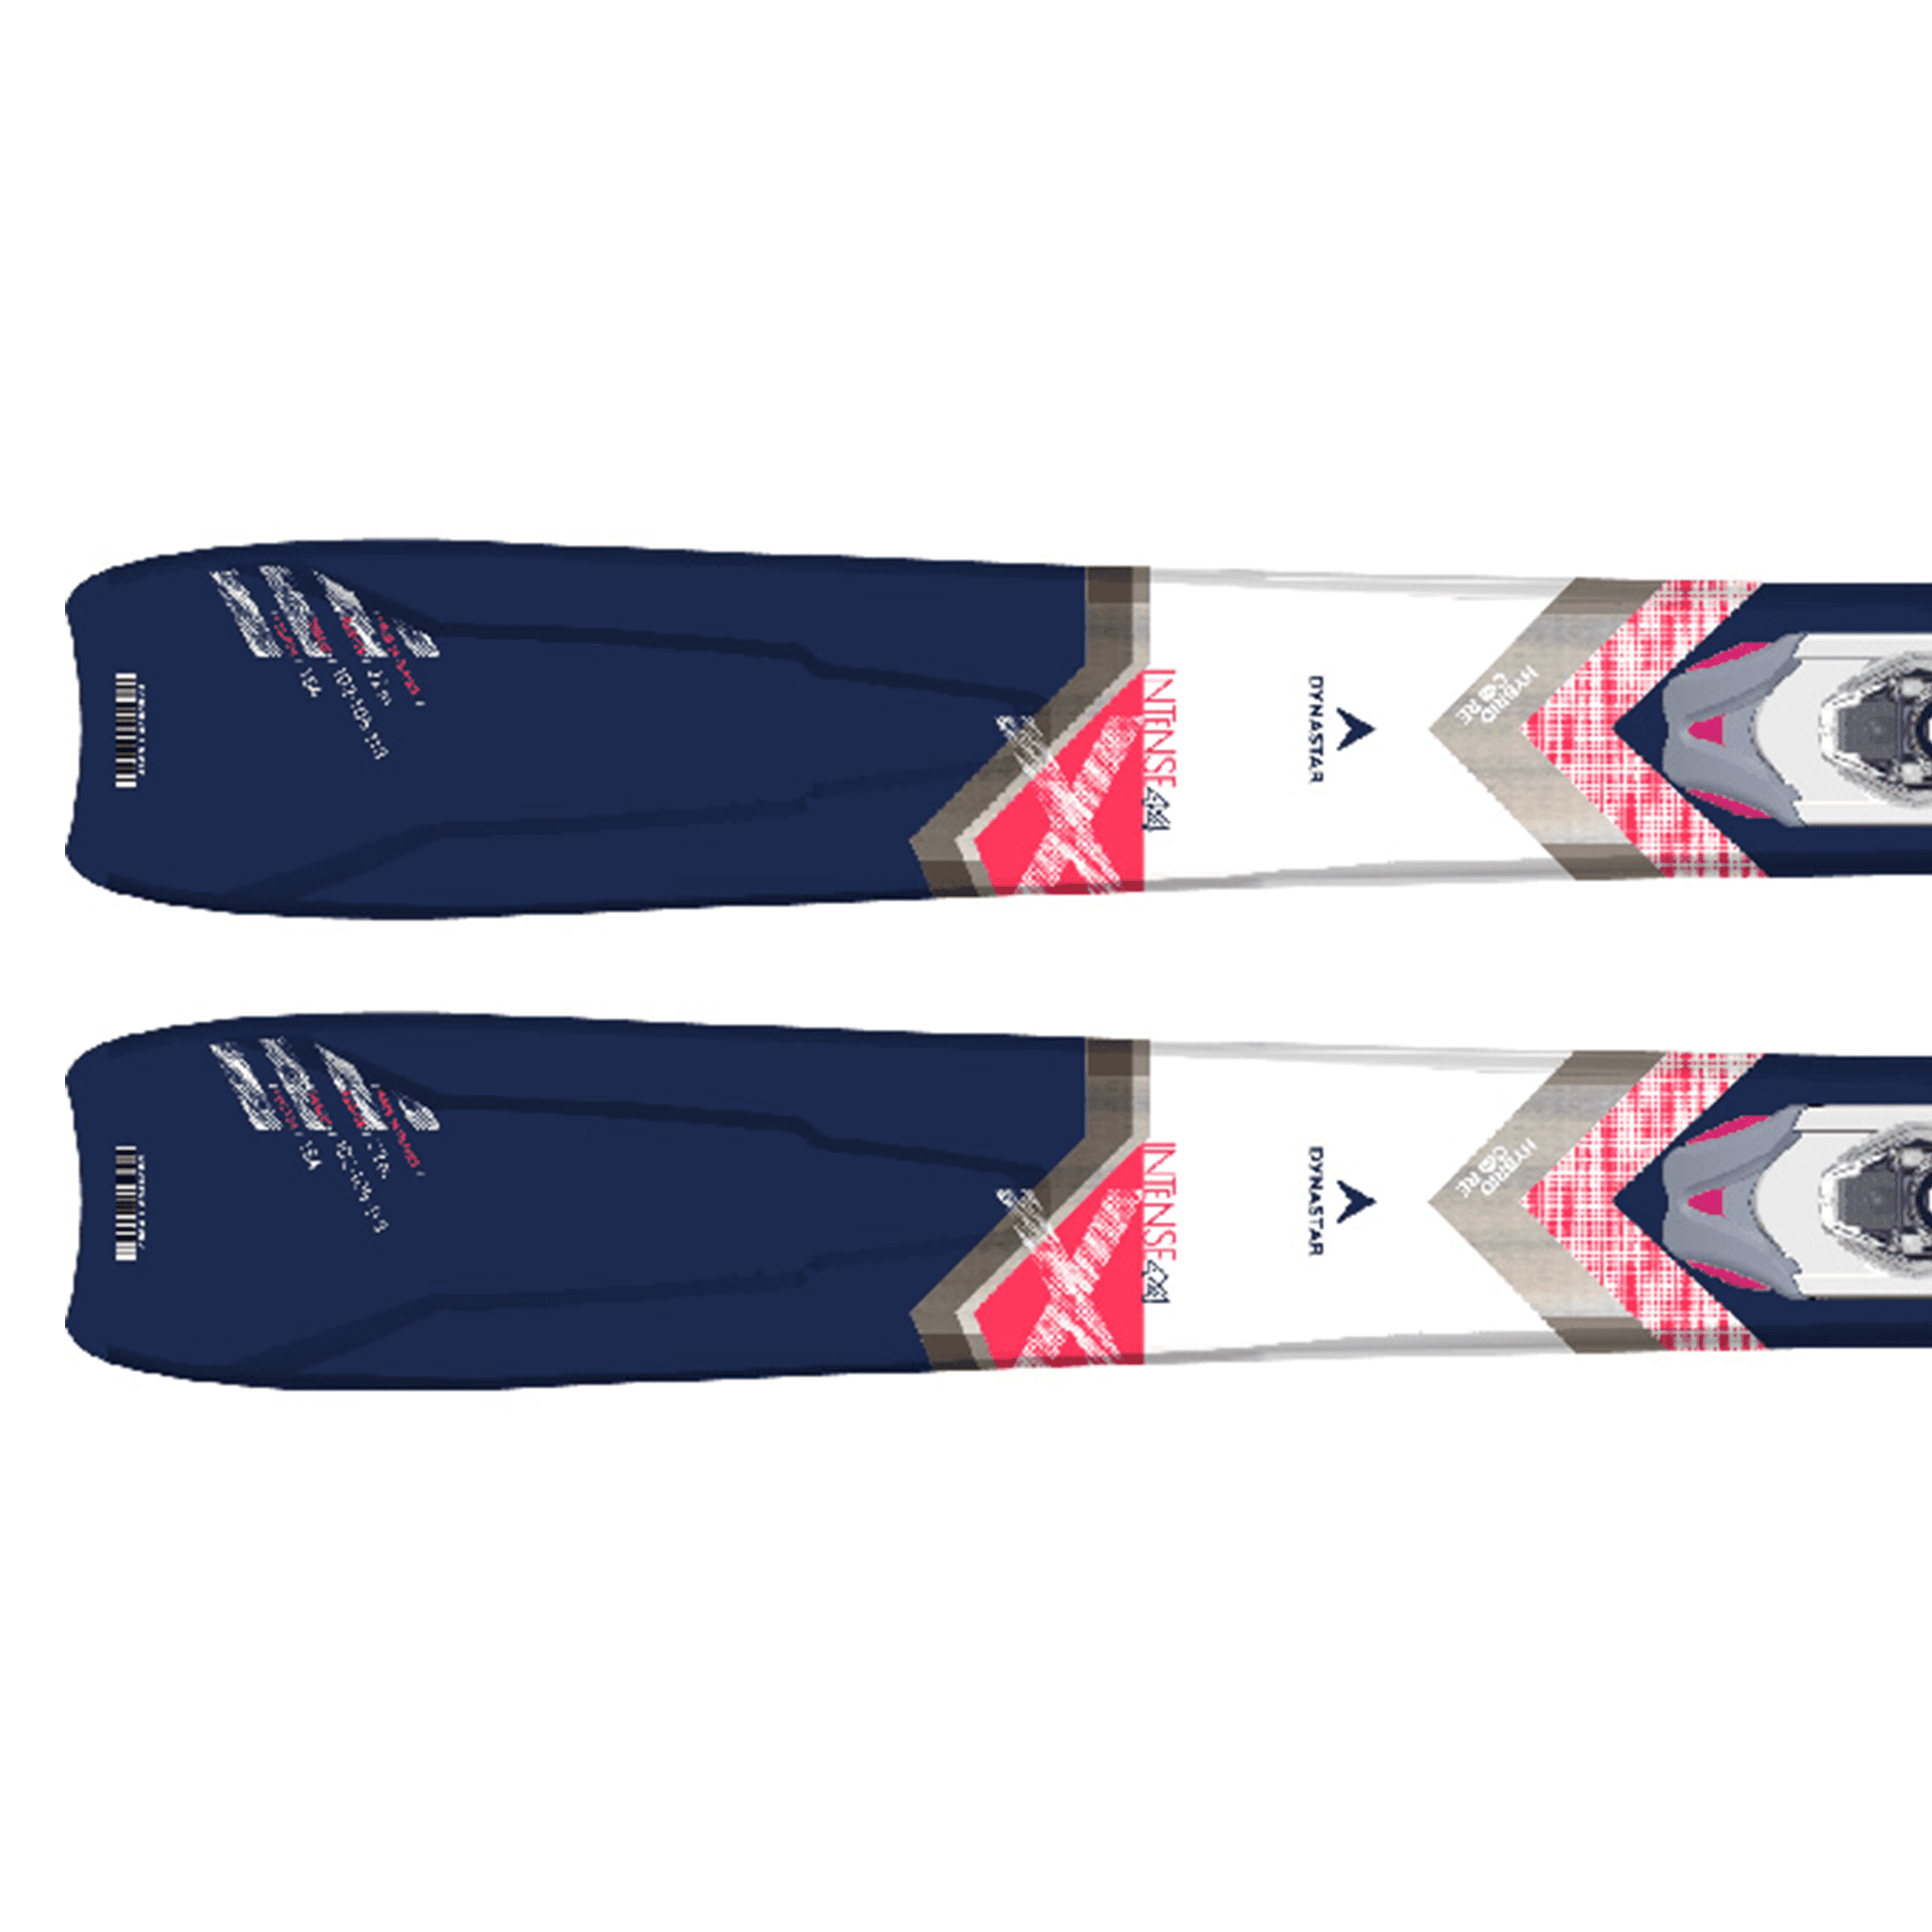 Dynastar Intense 4X4 82 Women's Skis Inc Xpress W11 Bindings (2021)